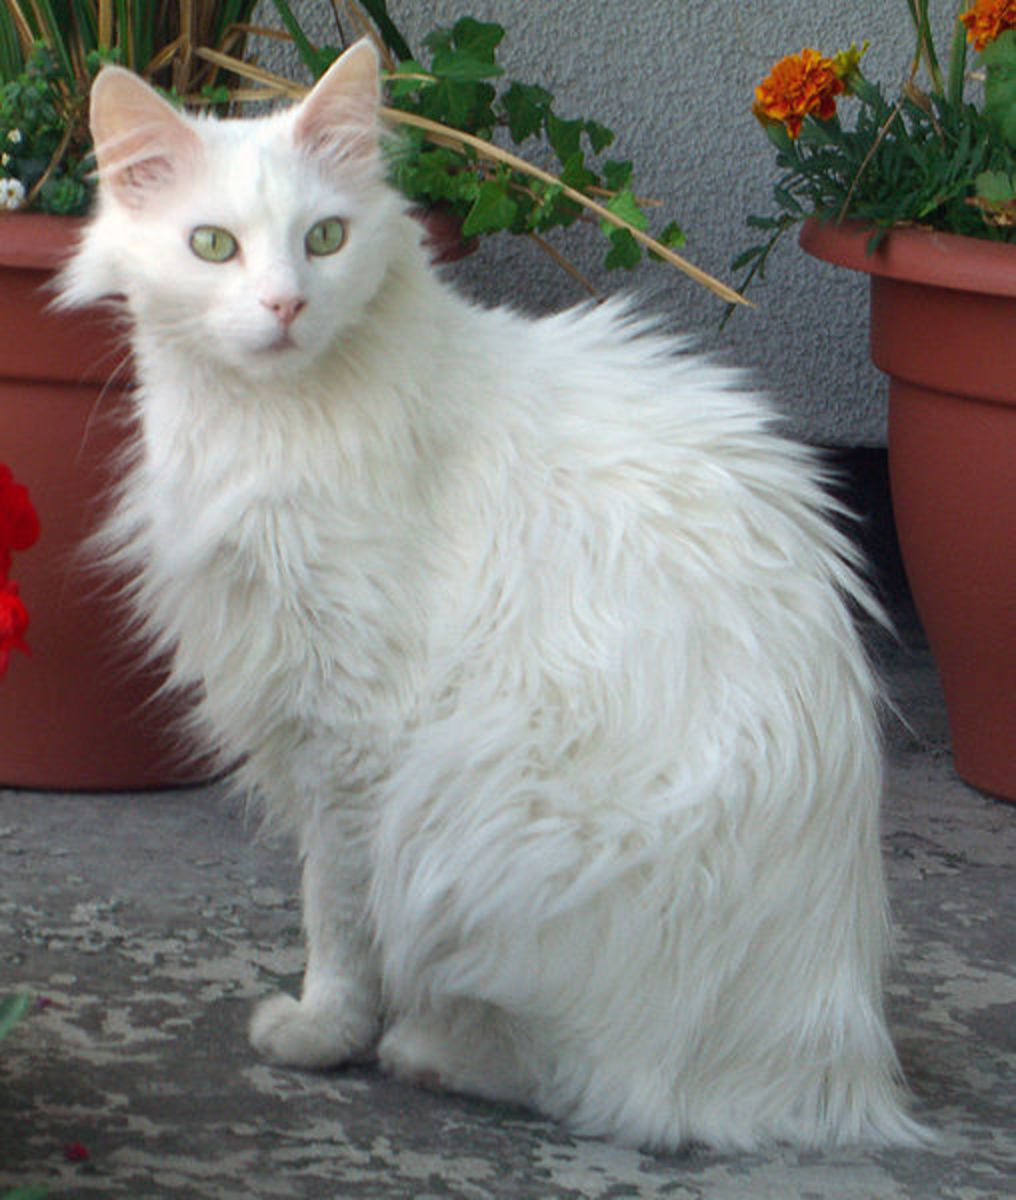 The Turkish Angora.